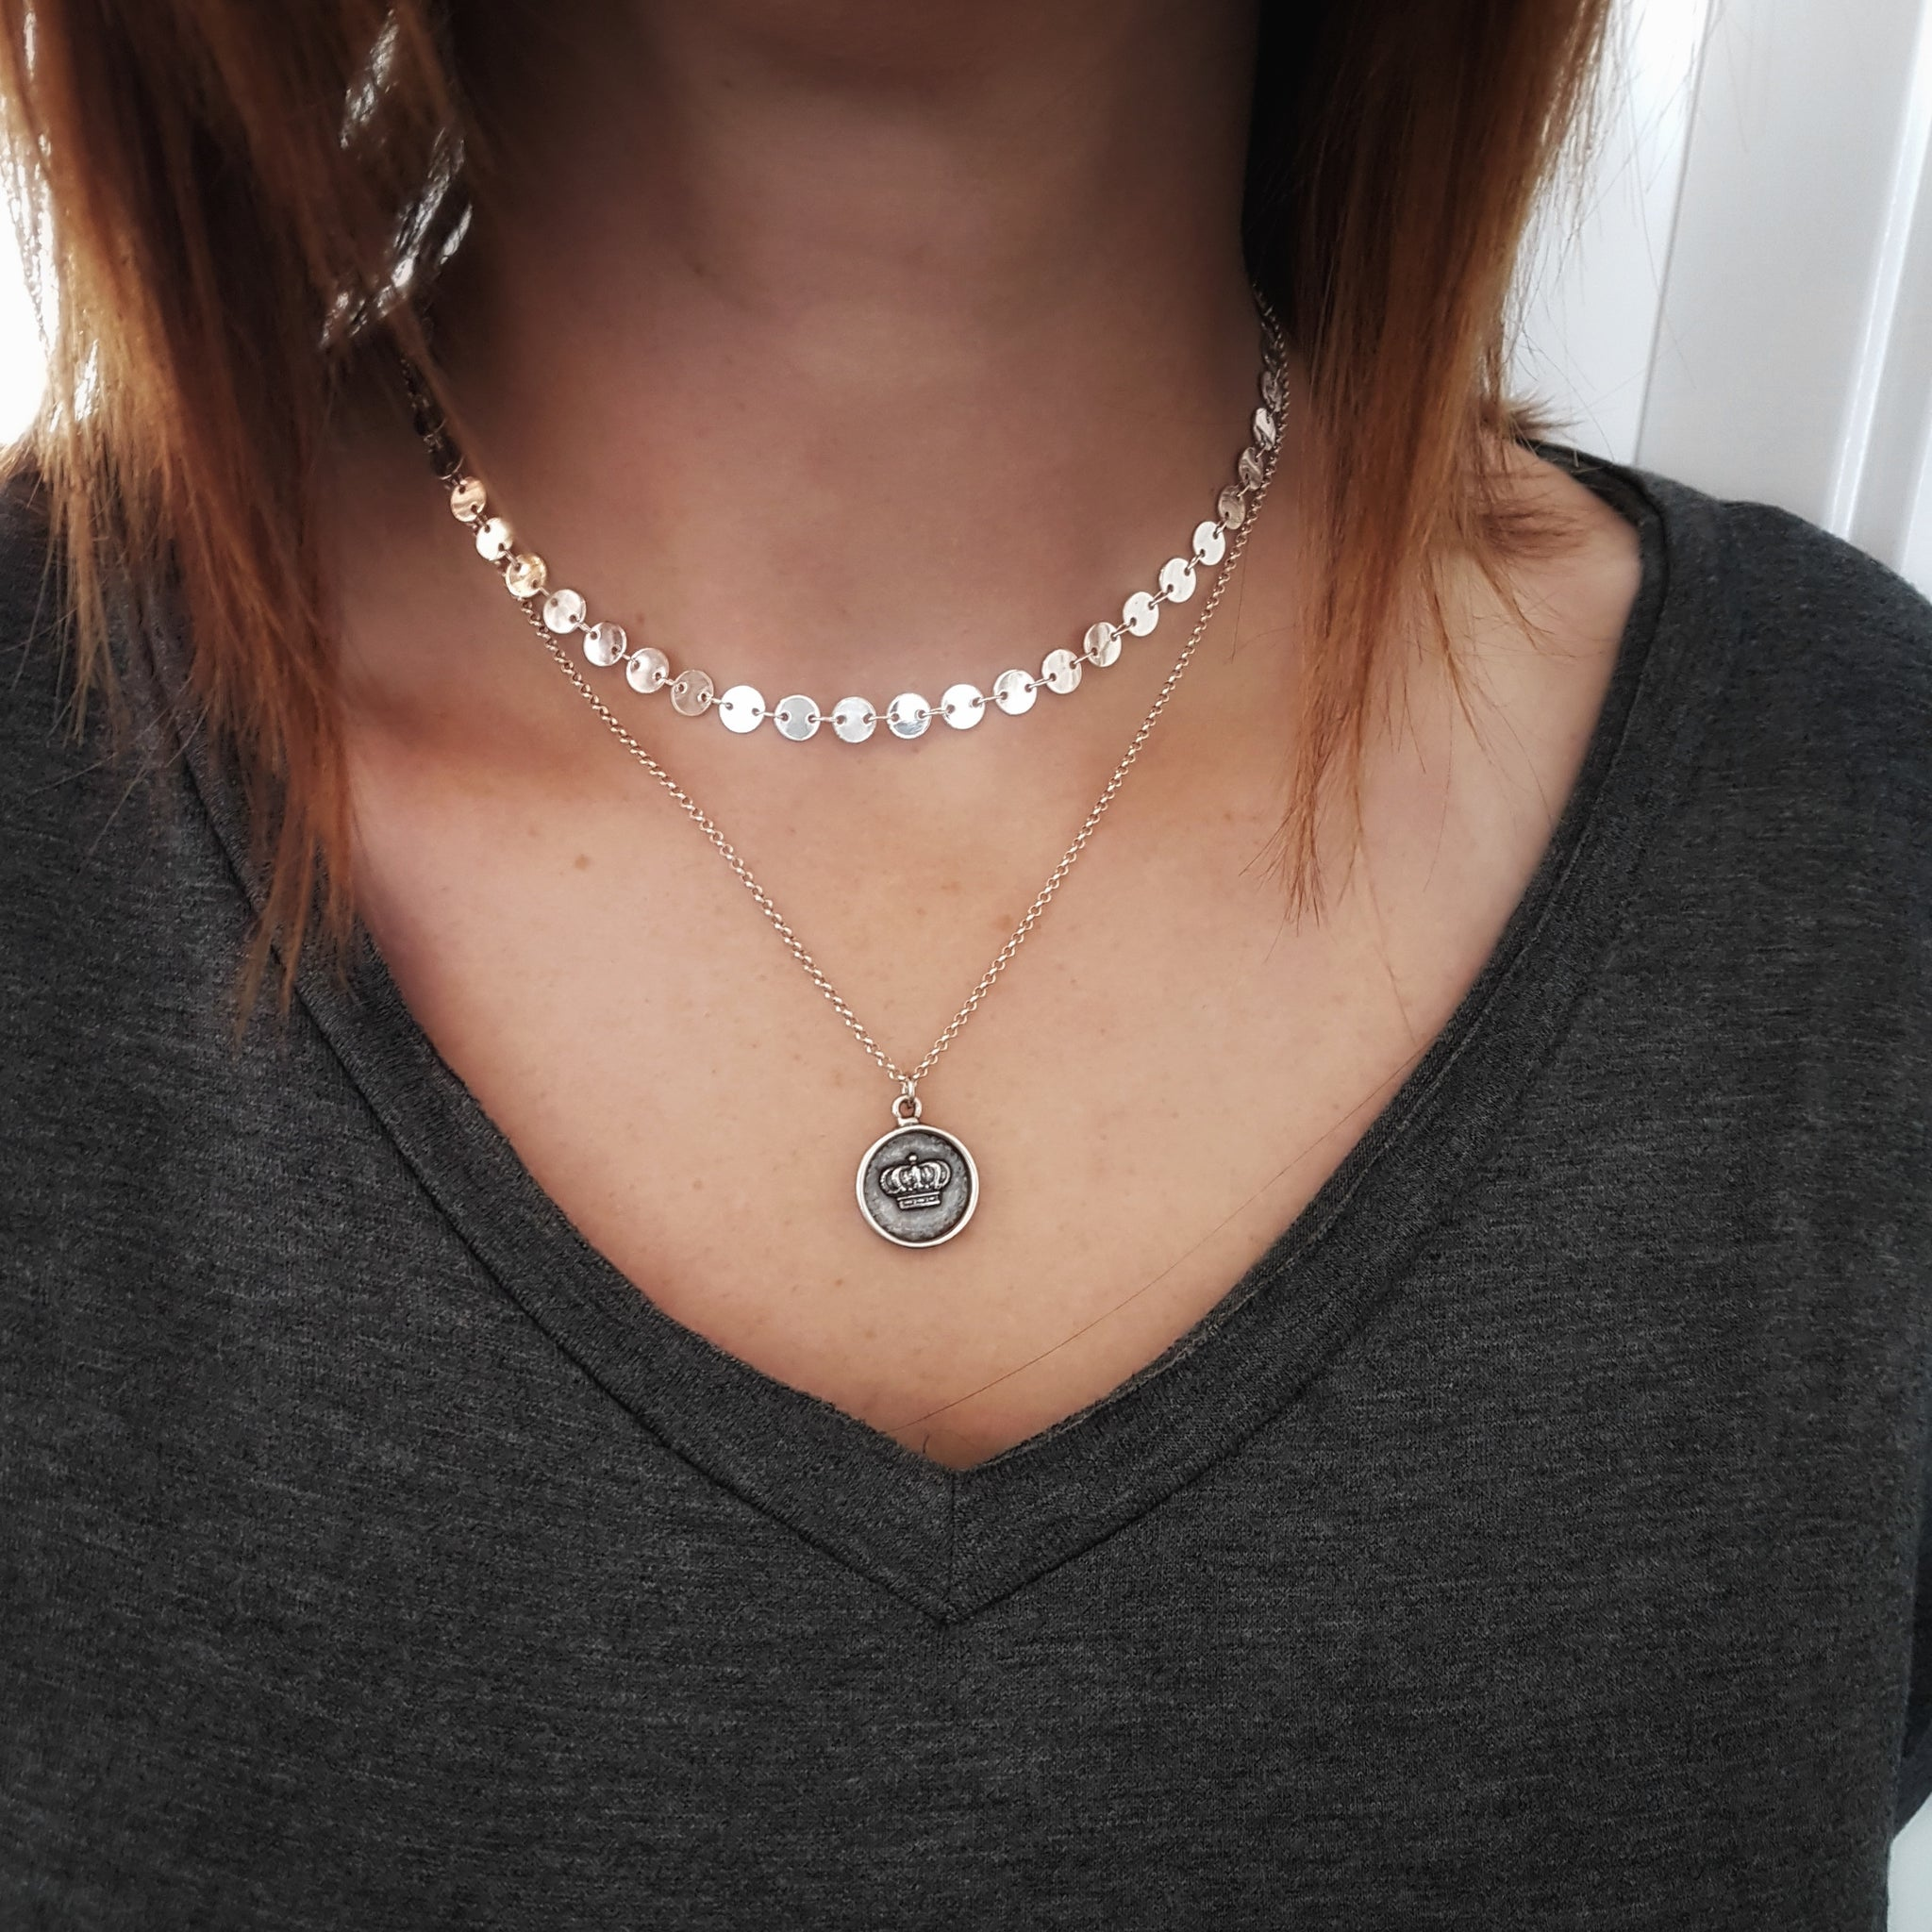 Tiny Boho Coin Choker Necklace - Gwen Delicious Jewelry Designs